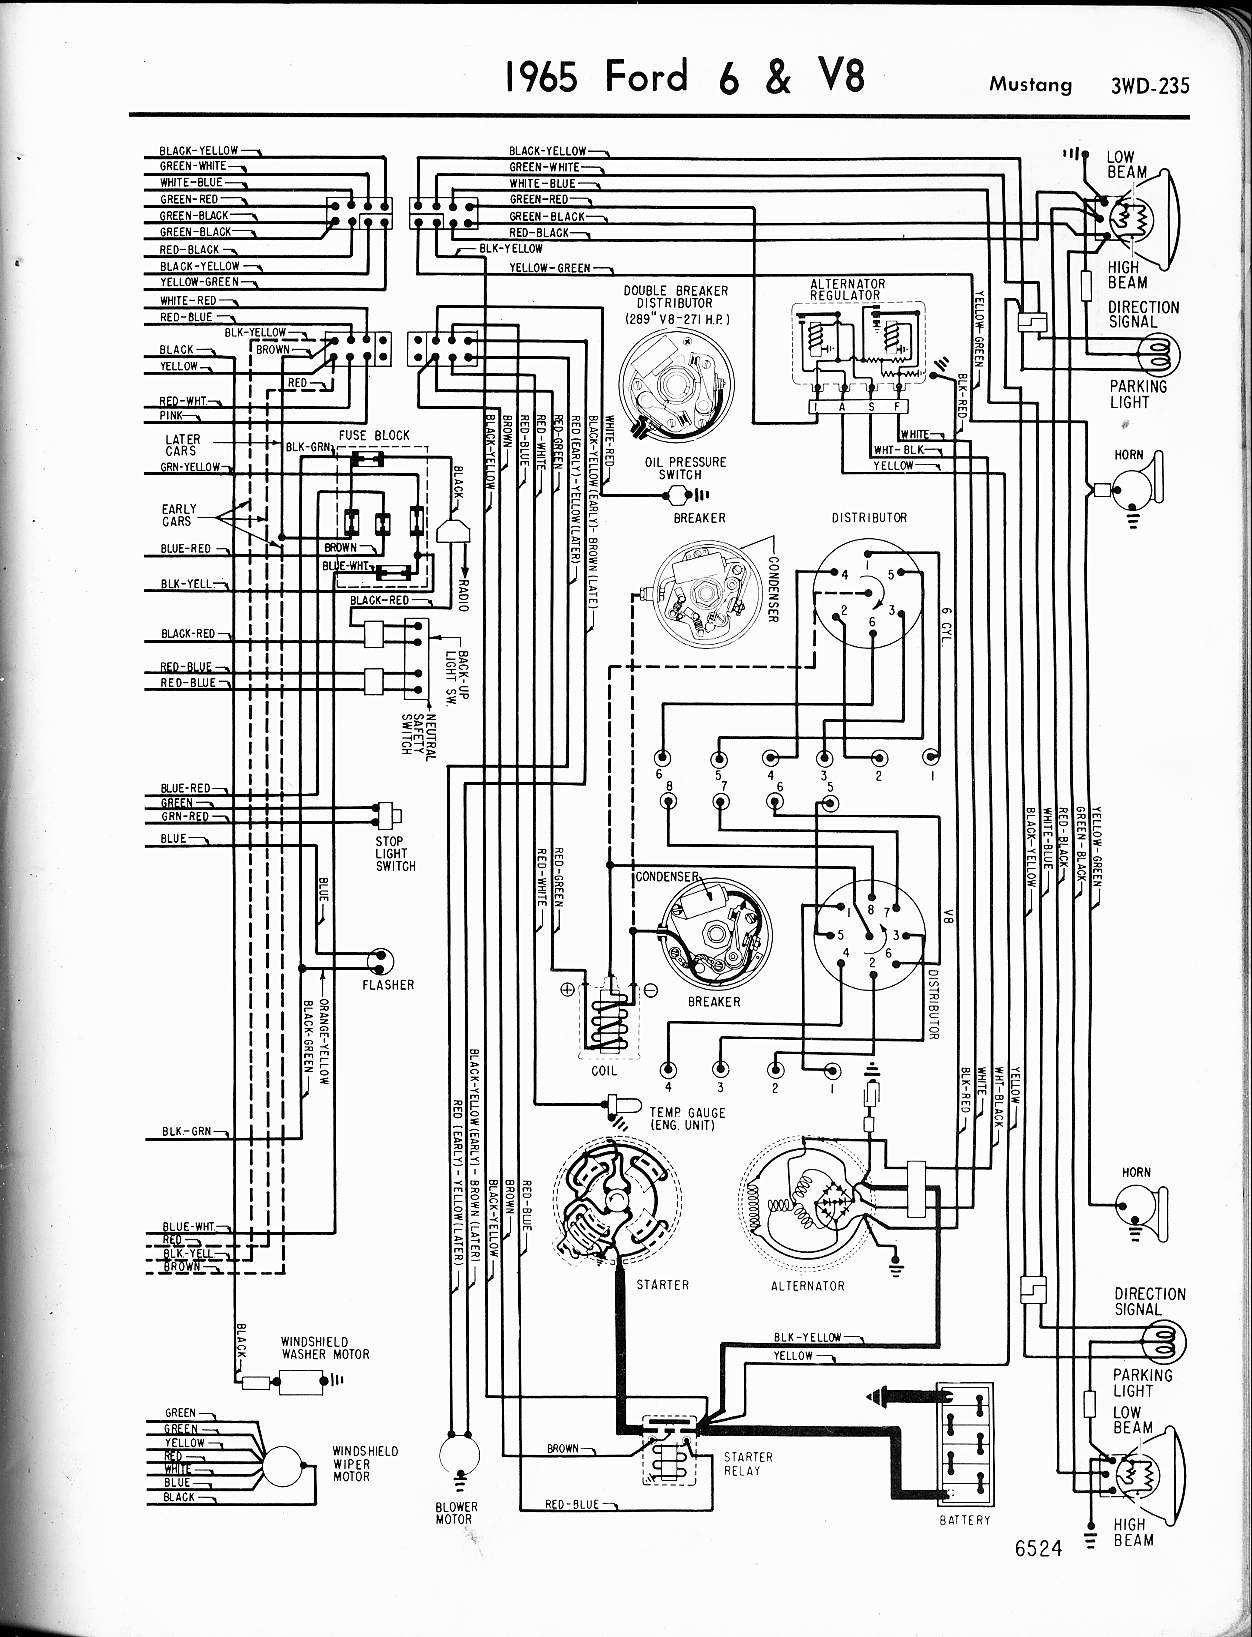 1965_mustang_wiring_2 ford diagrams 65 mustang tail light wiring diagram at n-0.co